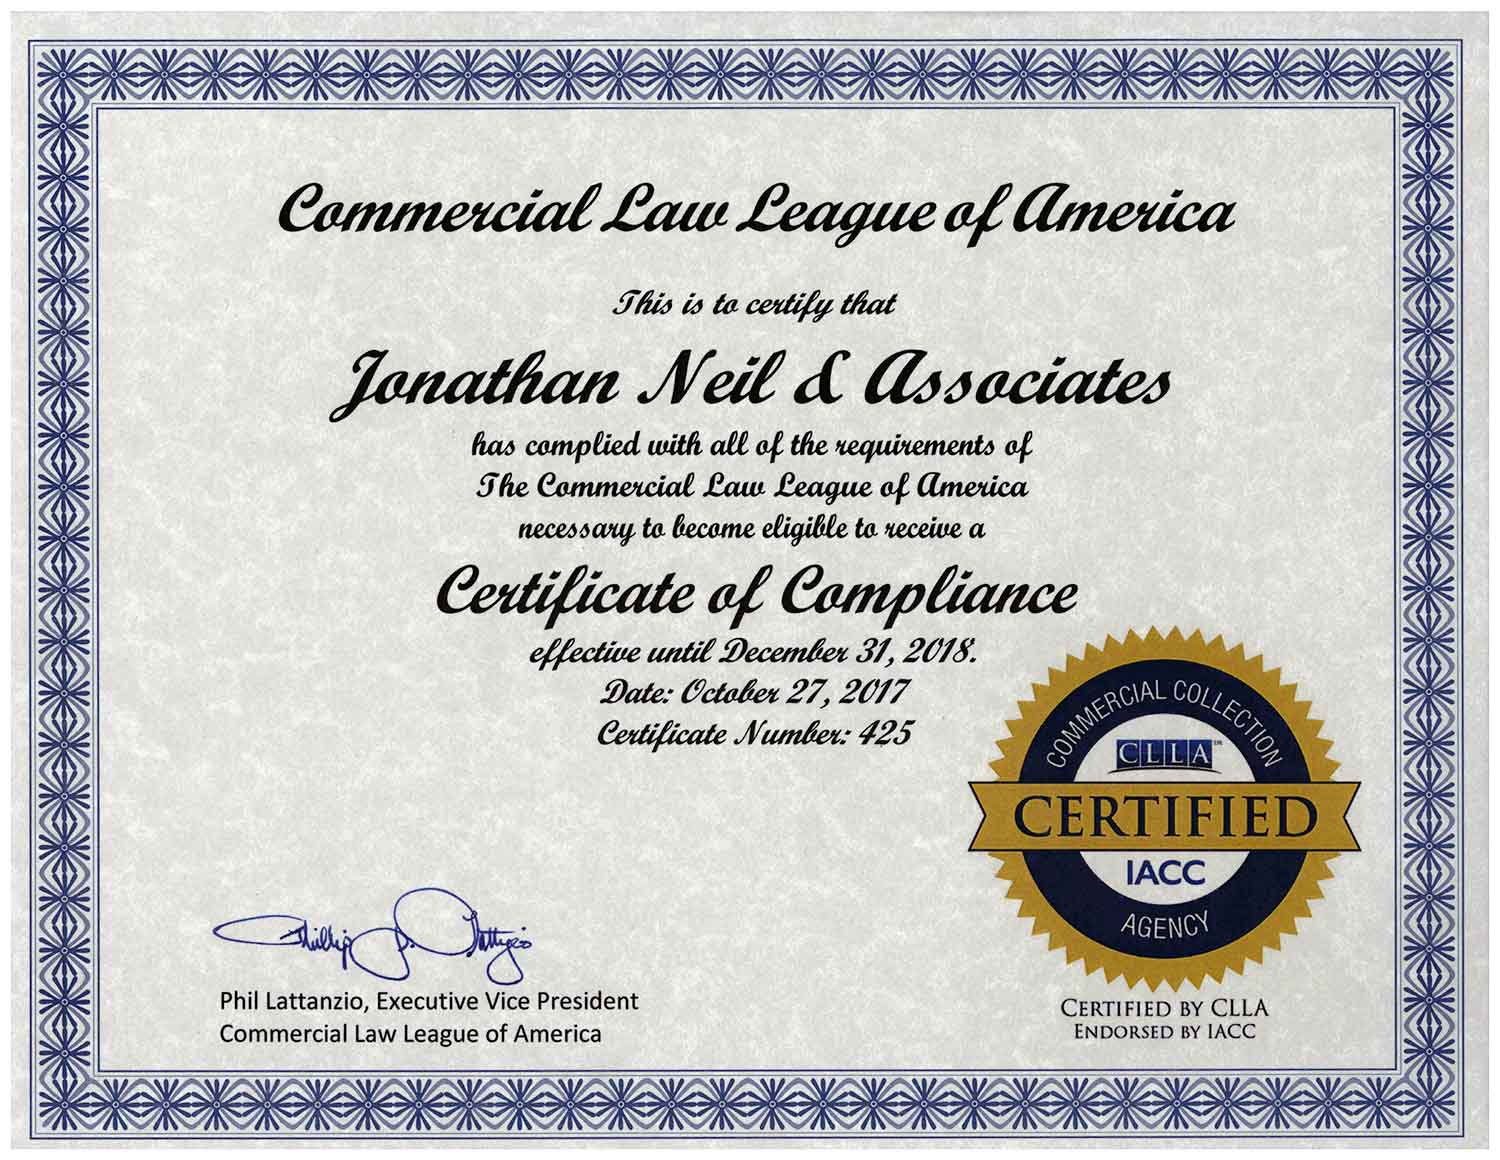 Commercial Law League of America, Certificate of Compliance